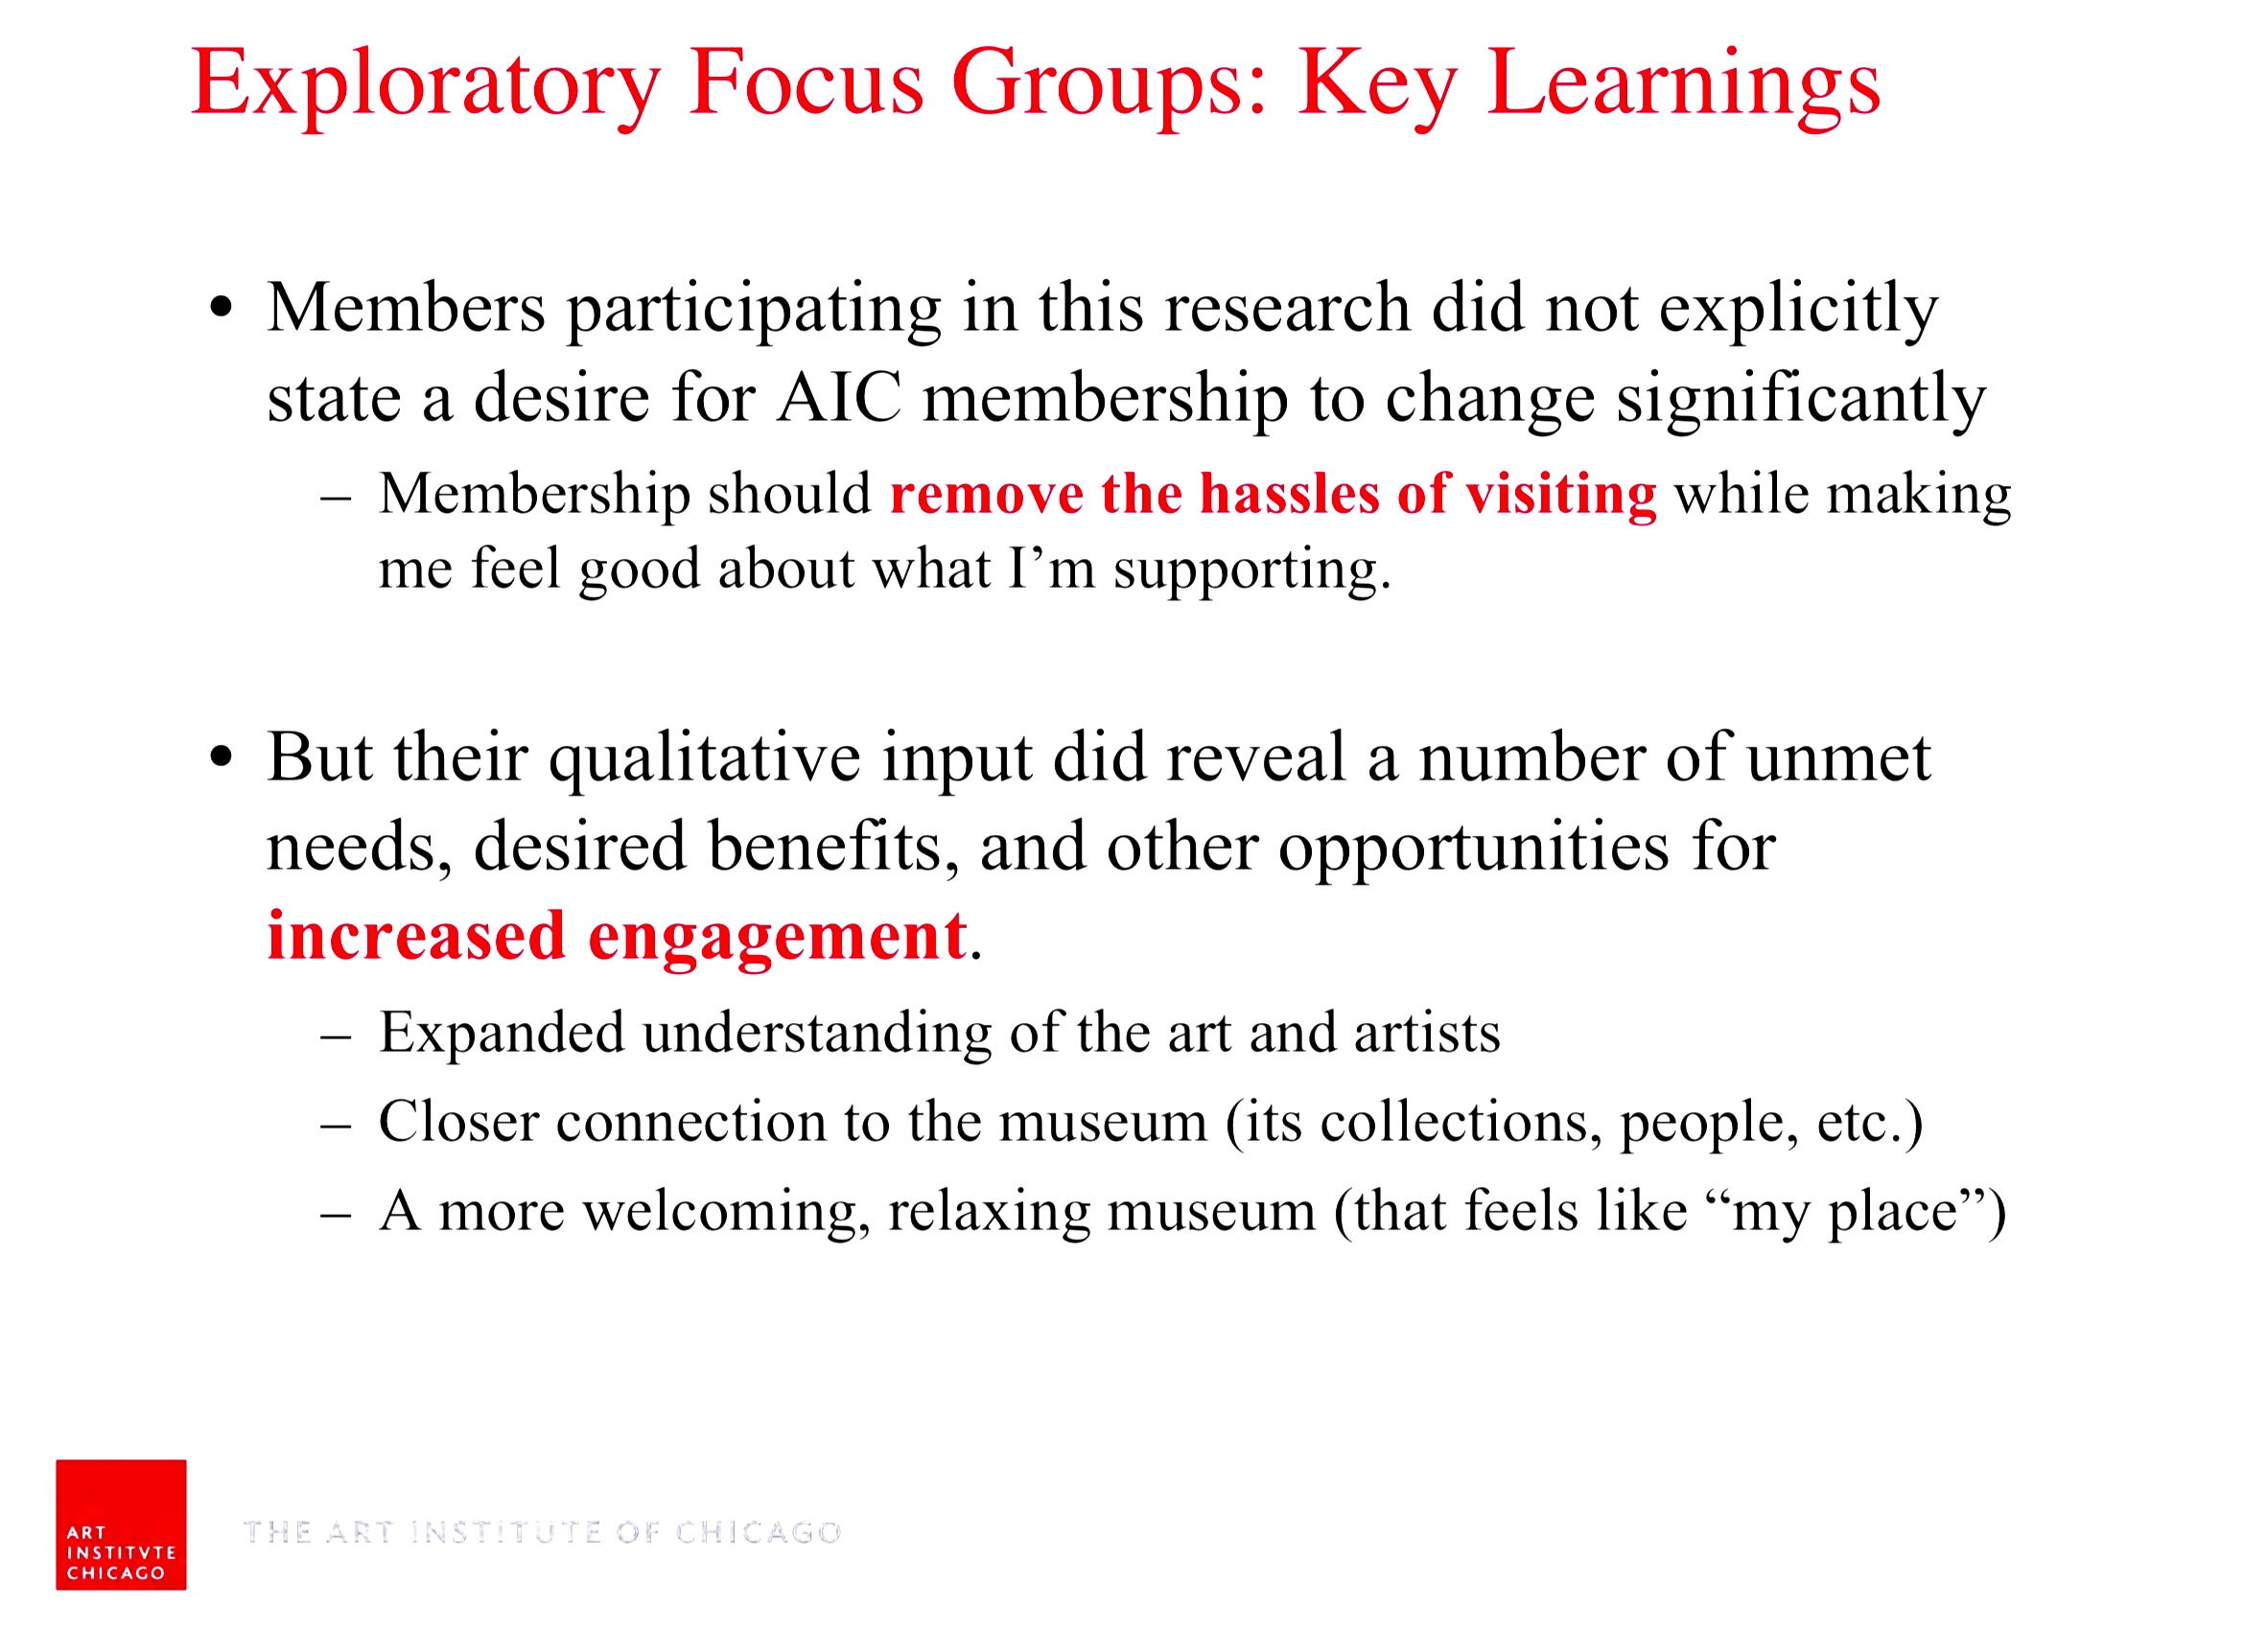 Focus group slide from membership research for AIC